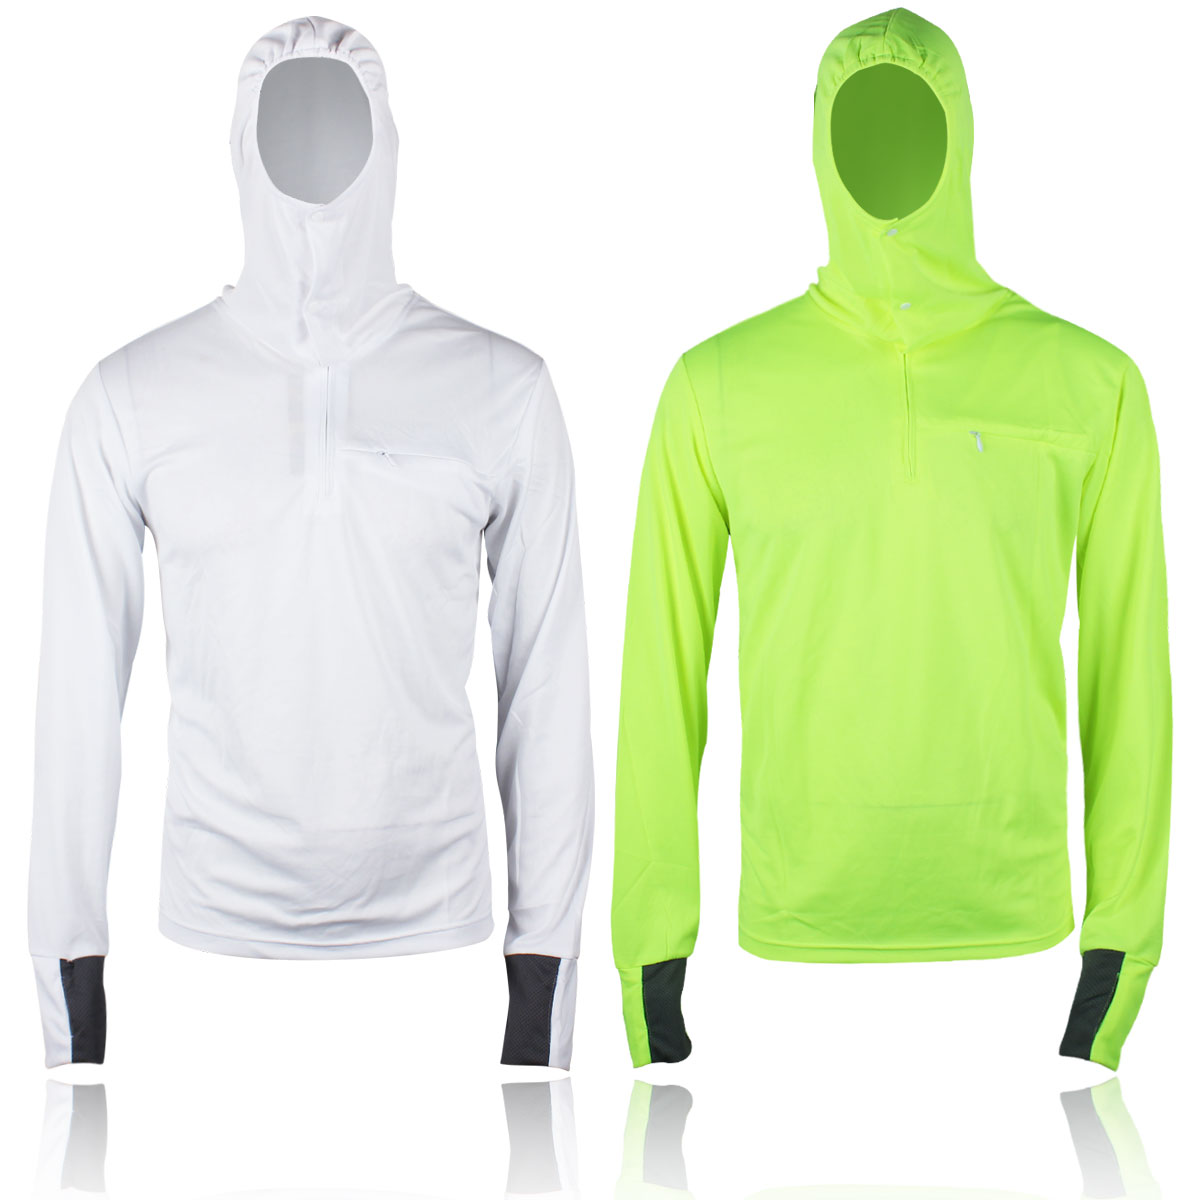 Luwint outdoor fishing sun suit male hooded long-sleeve mosquito perspicuousness anti-uv quick-drying breathable shirt - JULY SHOP (Min. order $15 store)